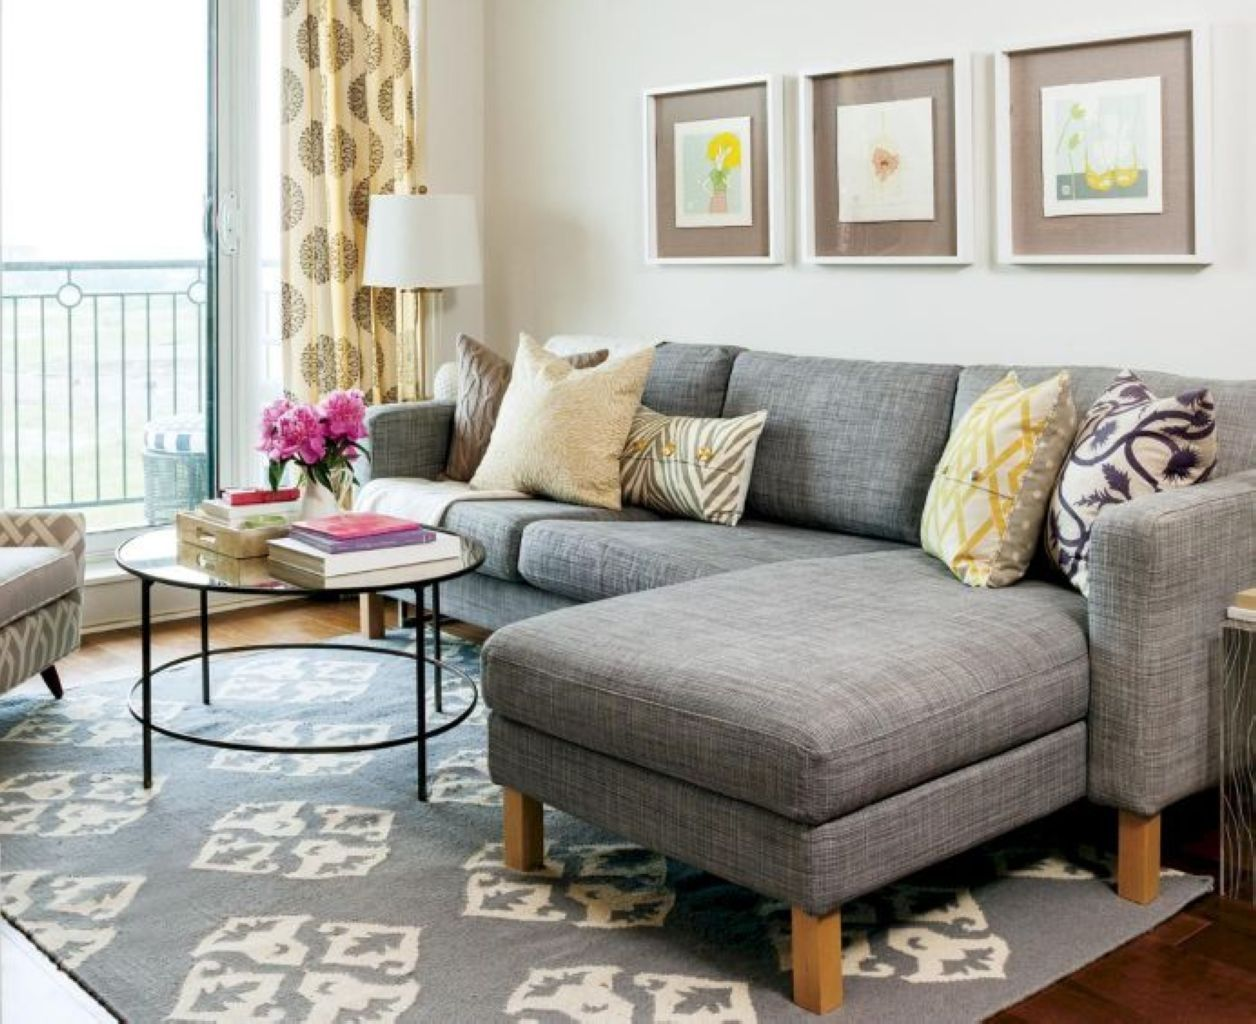 Best DIY Small Living Room Ideas On A Budget 41 - TOPARCHITECTURE ...